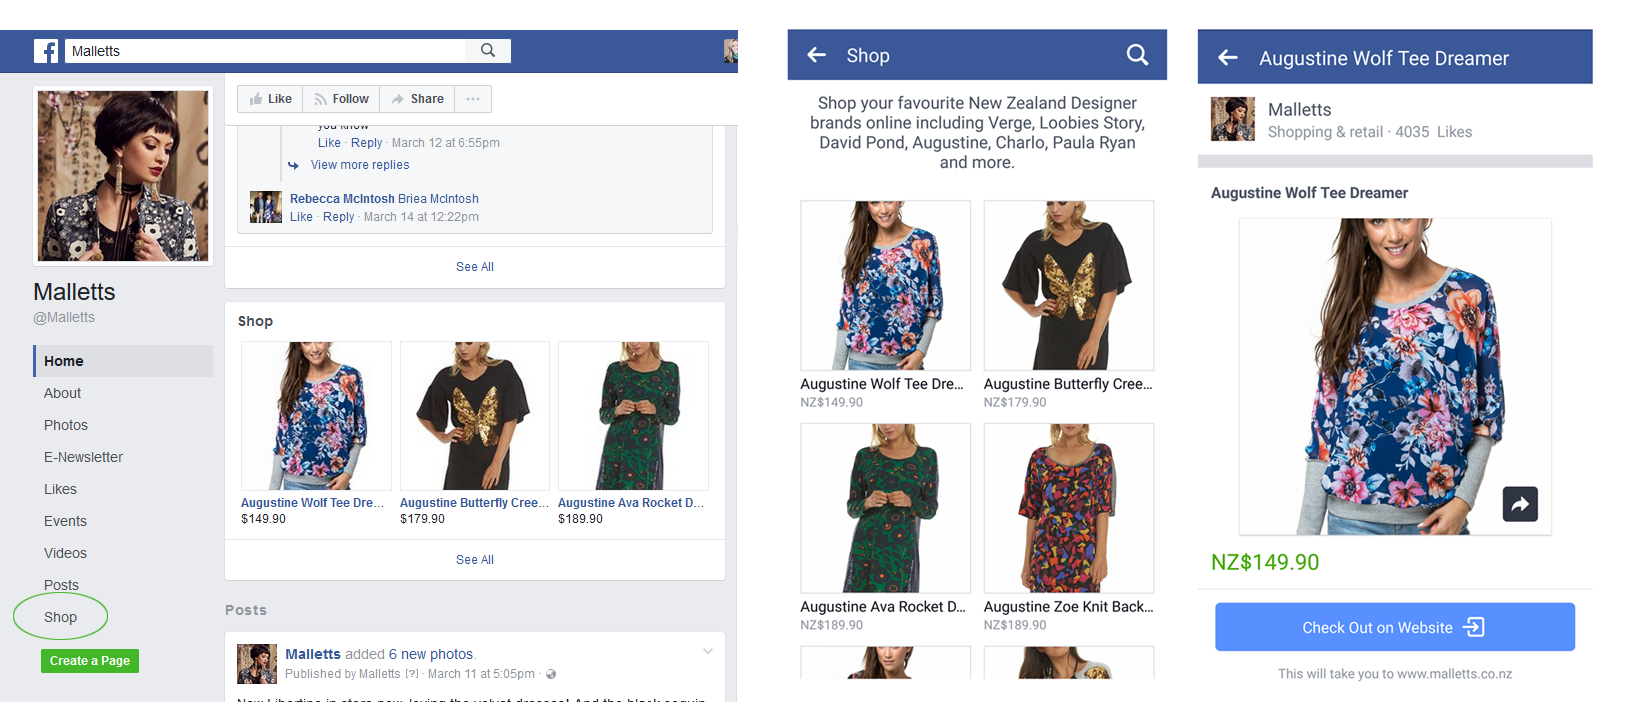 Facebook dynamic product ads the ultimate guide: part 1 | eboost.